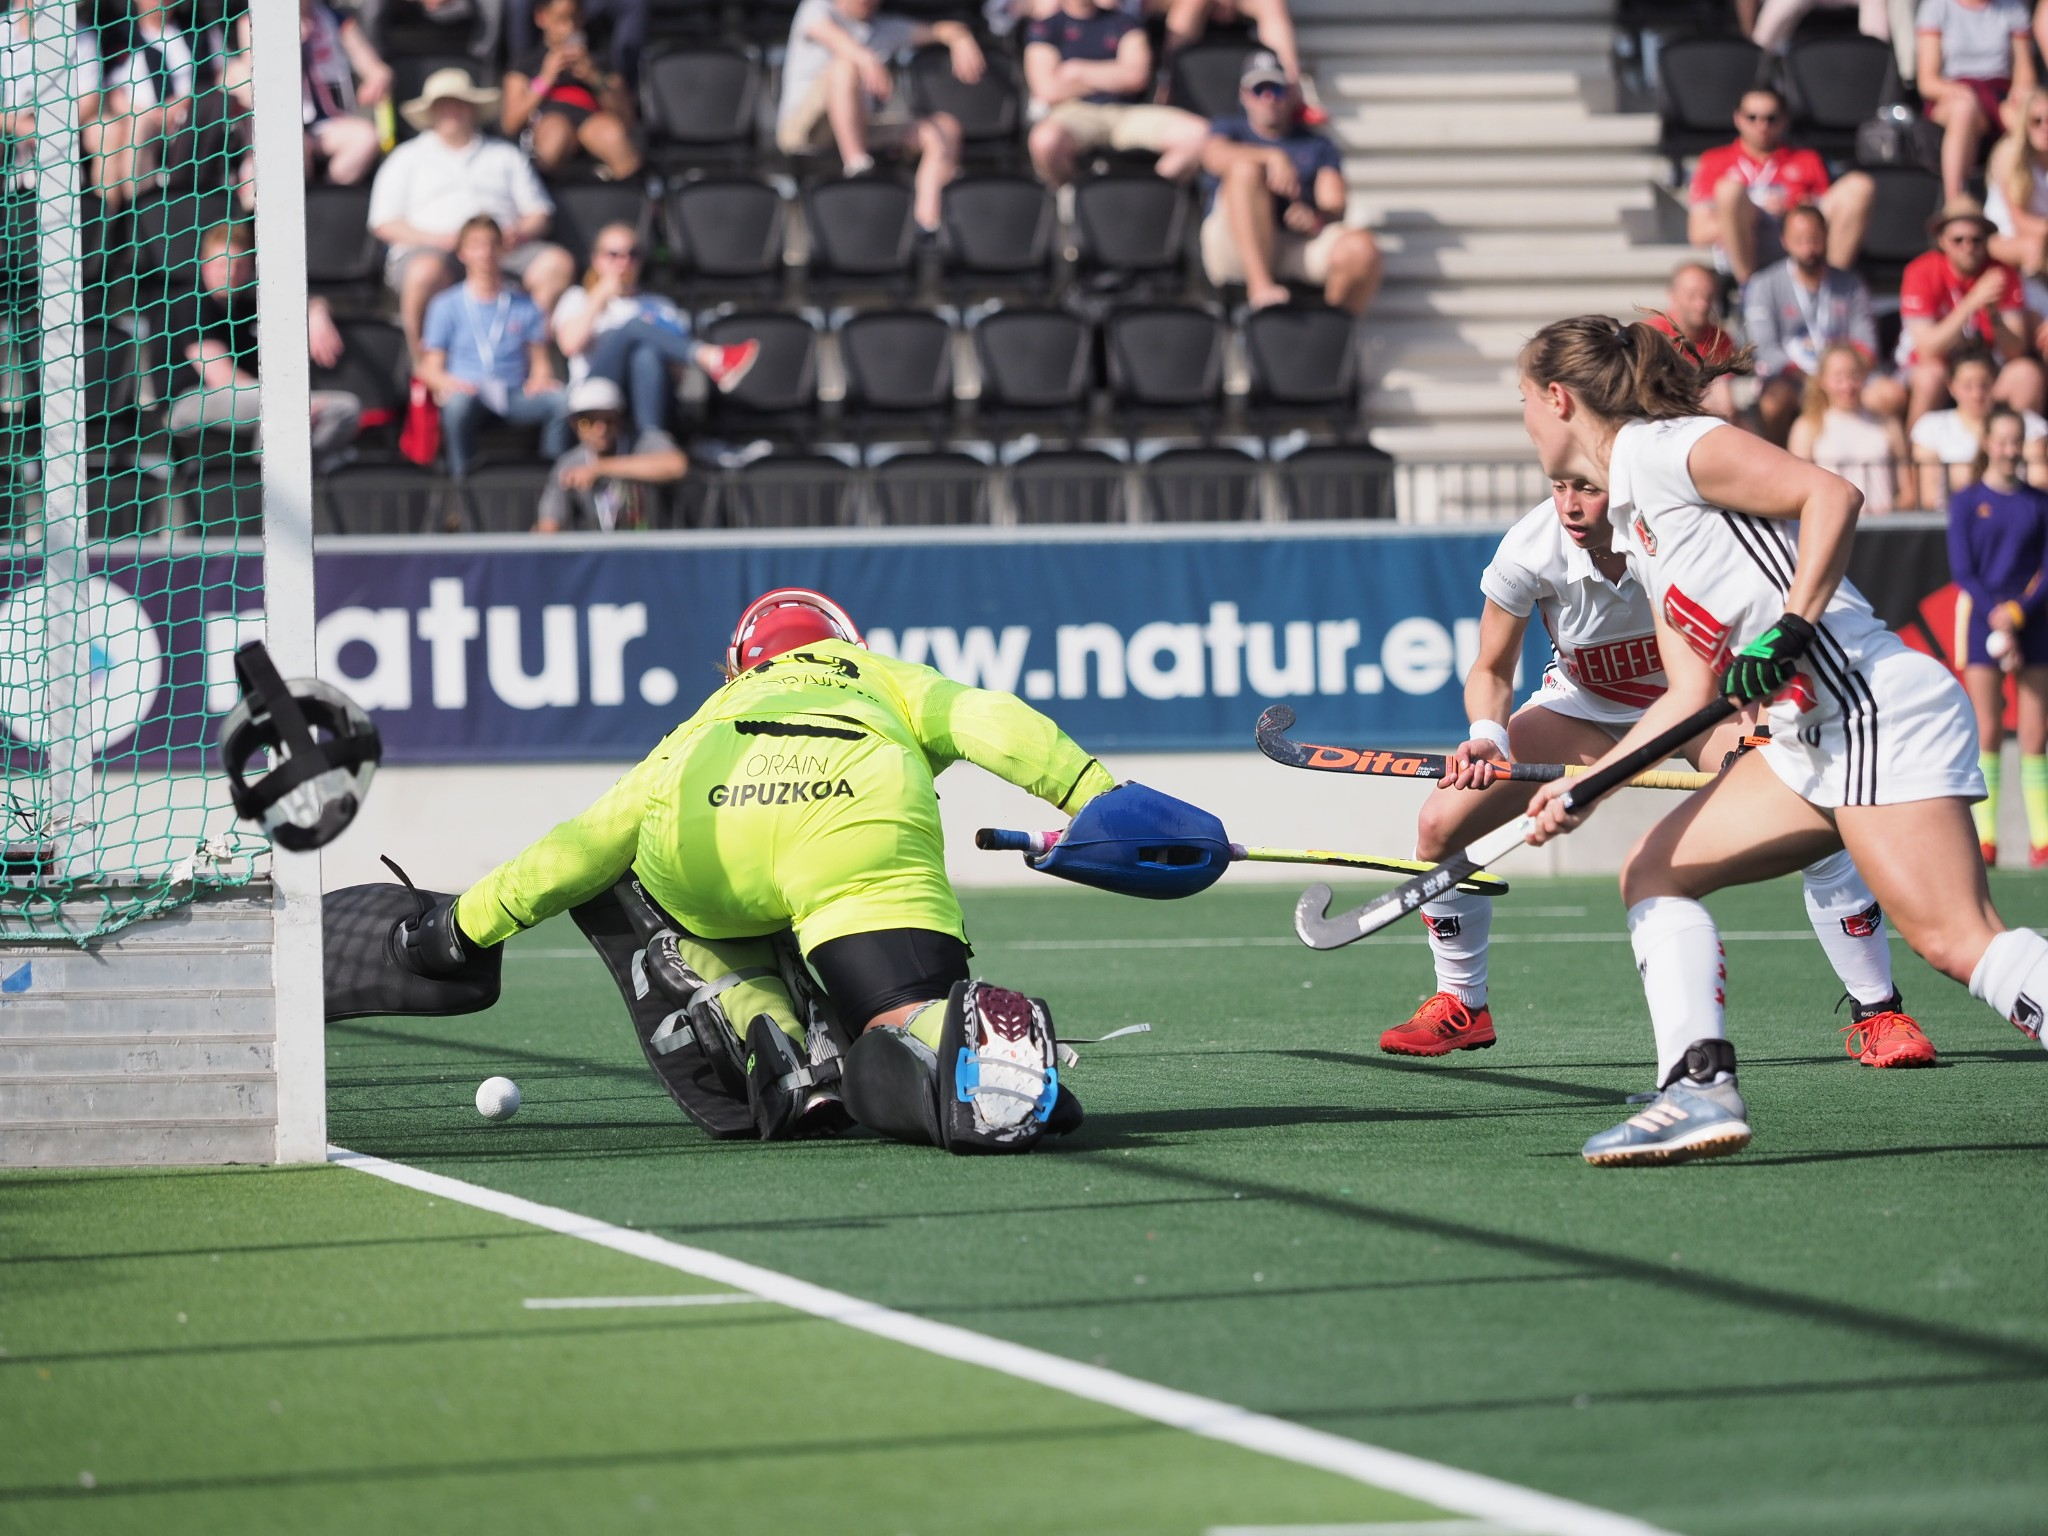 Finale Europa Cup Dames: Amsterdam - Real Sociedad (Eindstand 7 - 0)